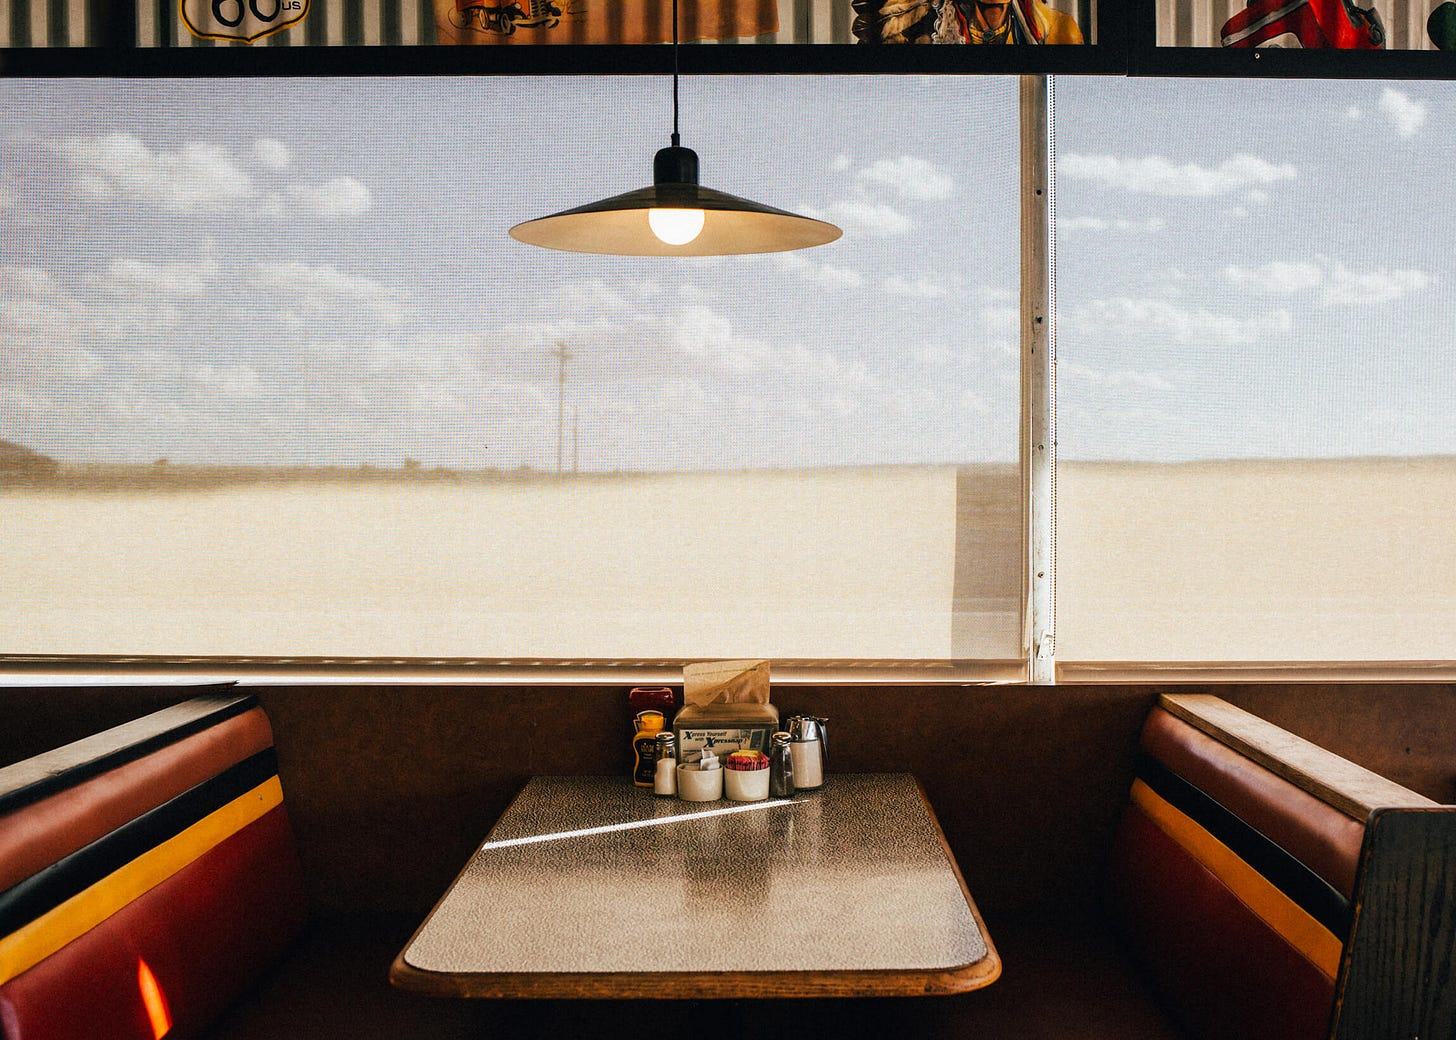 Arnaud Montagard: Somewhere in New Mexico - Open Doors Gallery